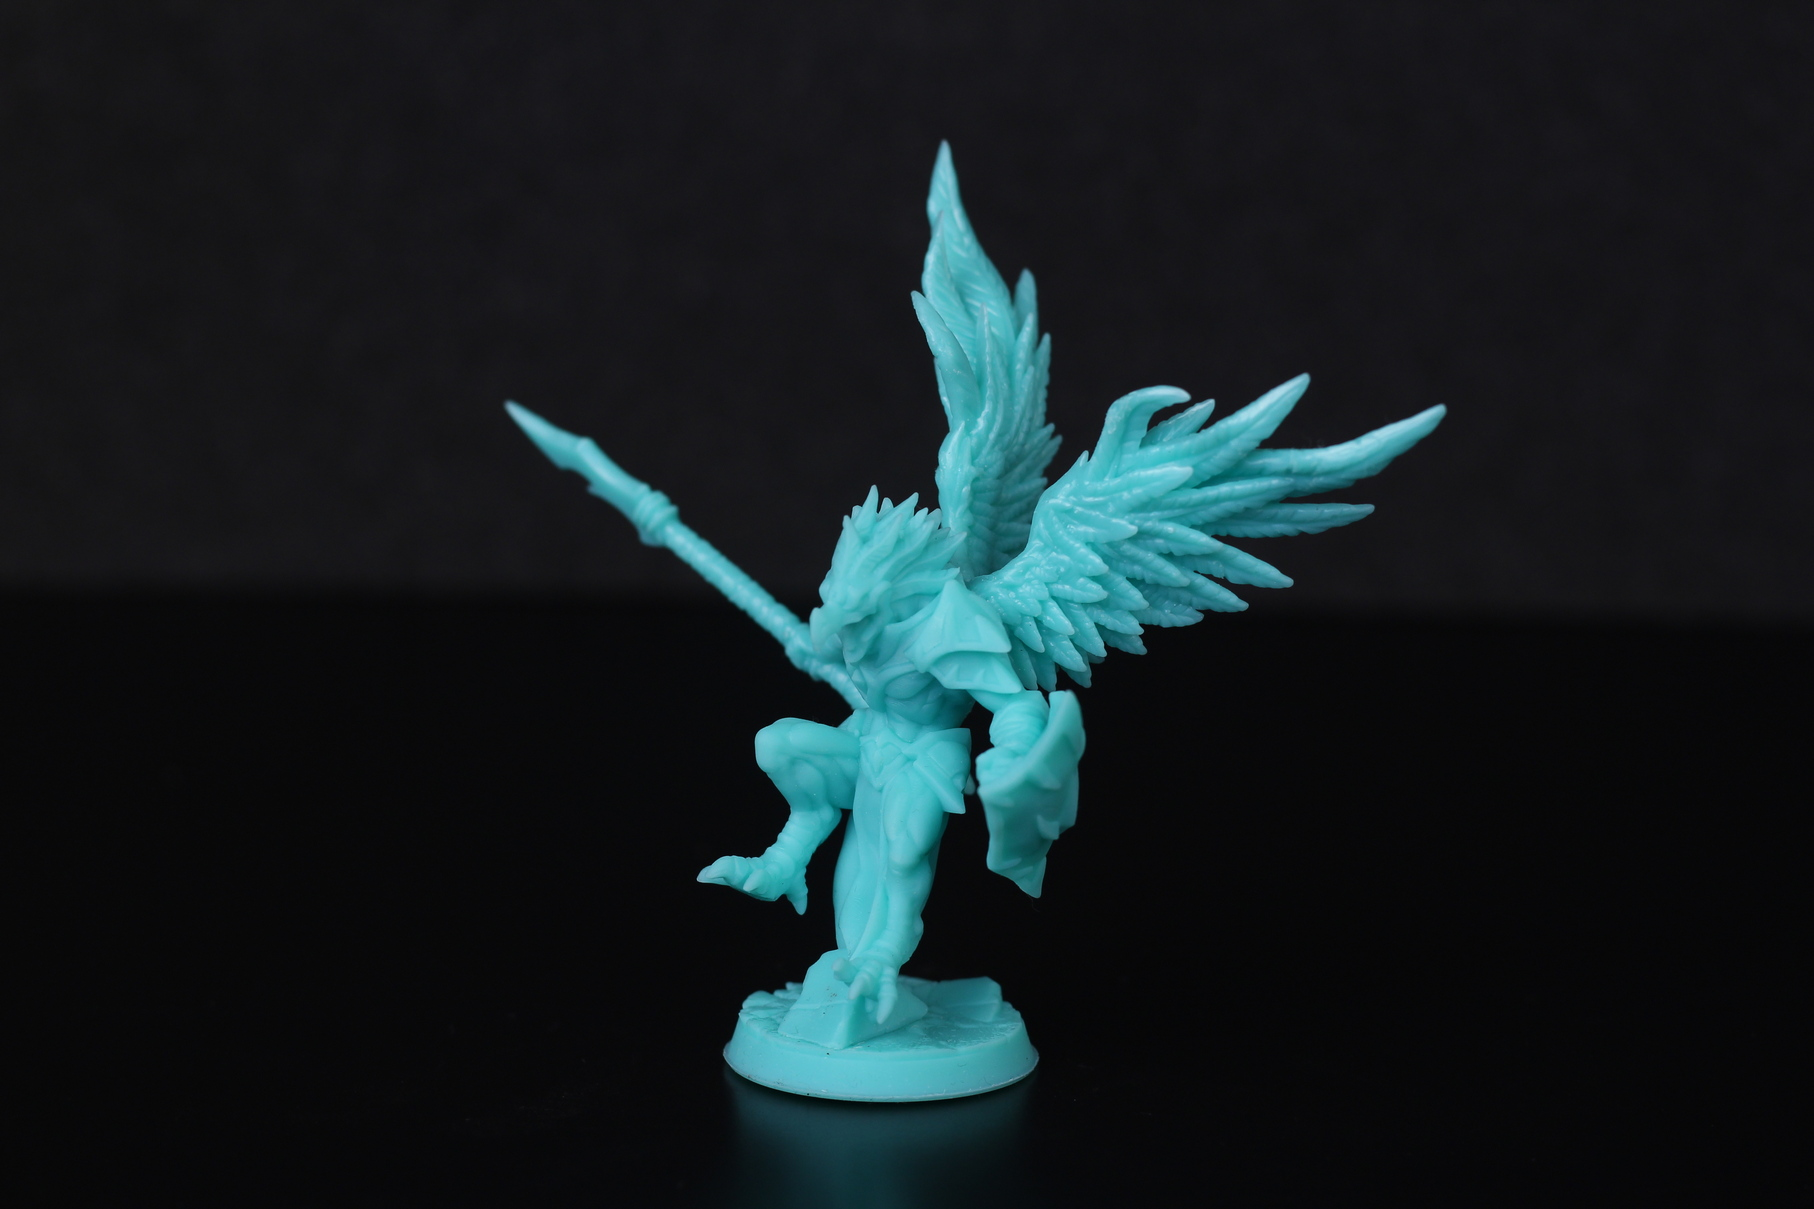 High Gryphkin printed on Anycubic Photon Mono X 5 | Anycubic Photon Mono X Review - Large Format Resin 3D Printer